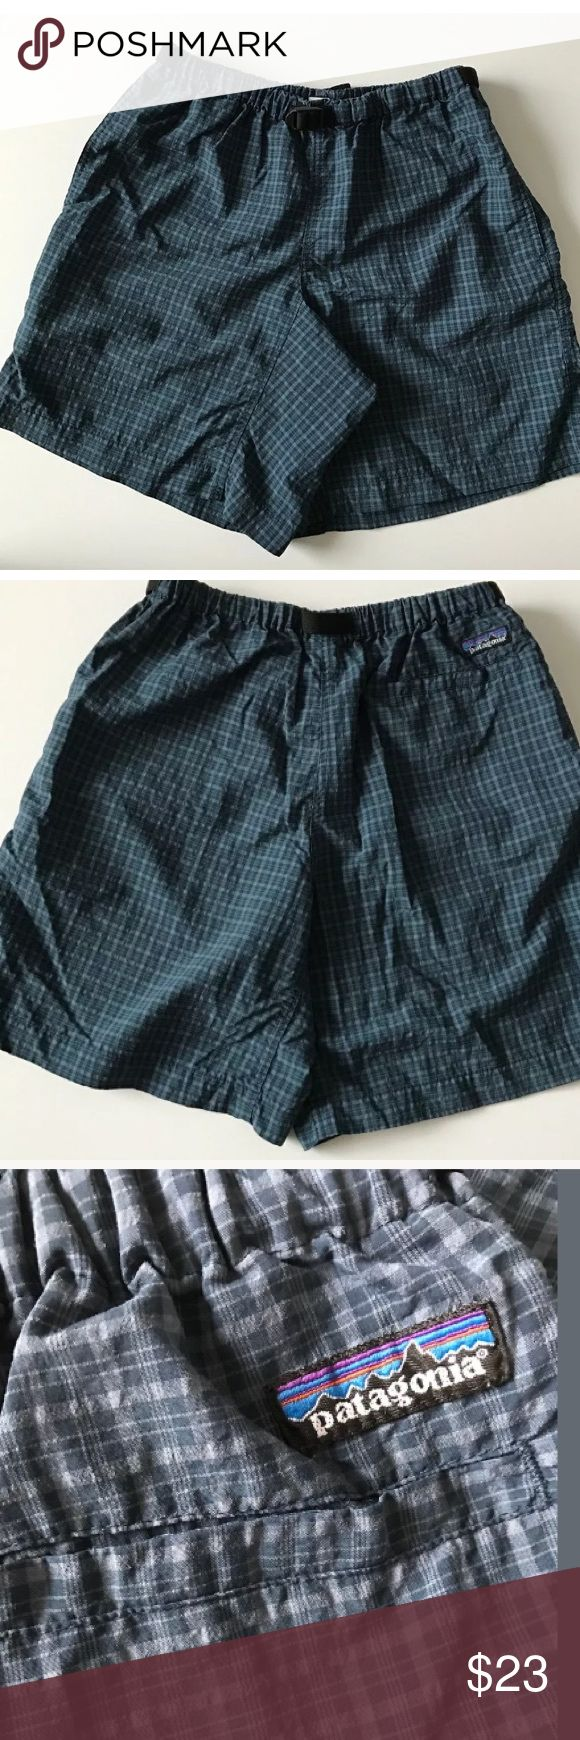 """Patagonia Men's Belted Hiking Swim Trunks Shorts Patagonia Men's Belted Hiking Swim Travel Trunks Shorts Size Medium Blue Plaid! Pre-Owned! Excellent Condition!! Inseam 9"""" Outterseam 18"""" Patagonia Swim Swim Trunks"""